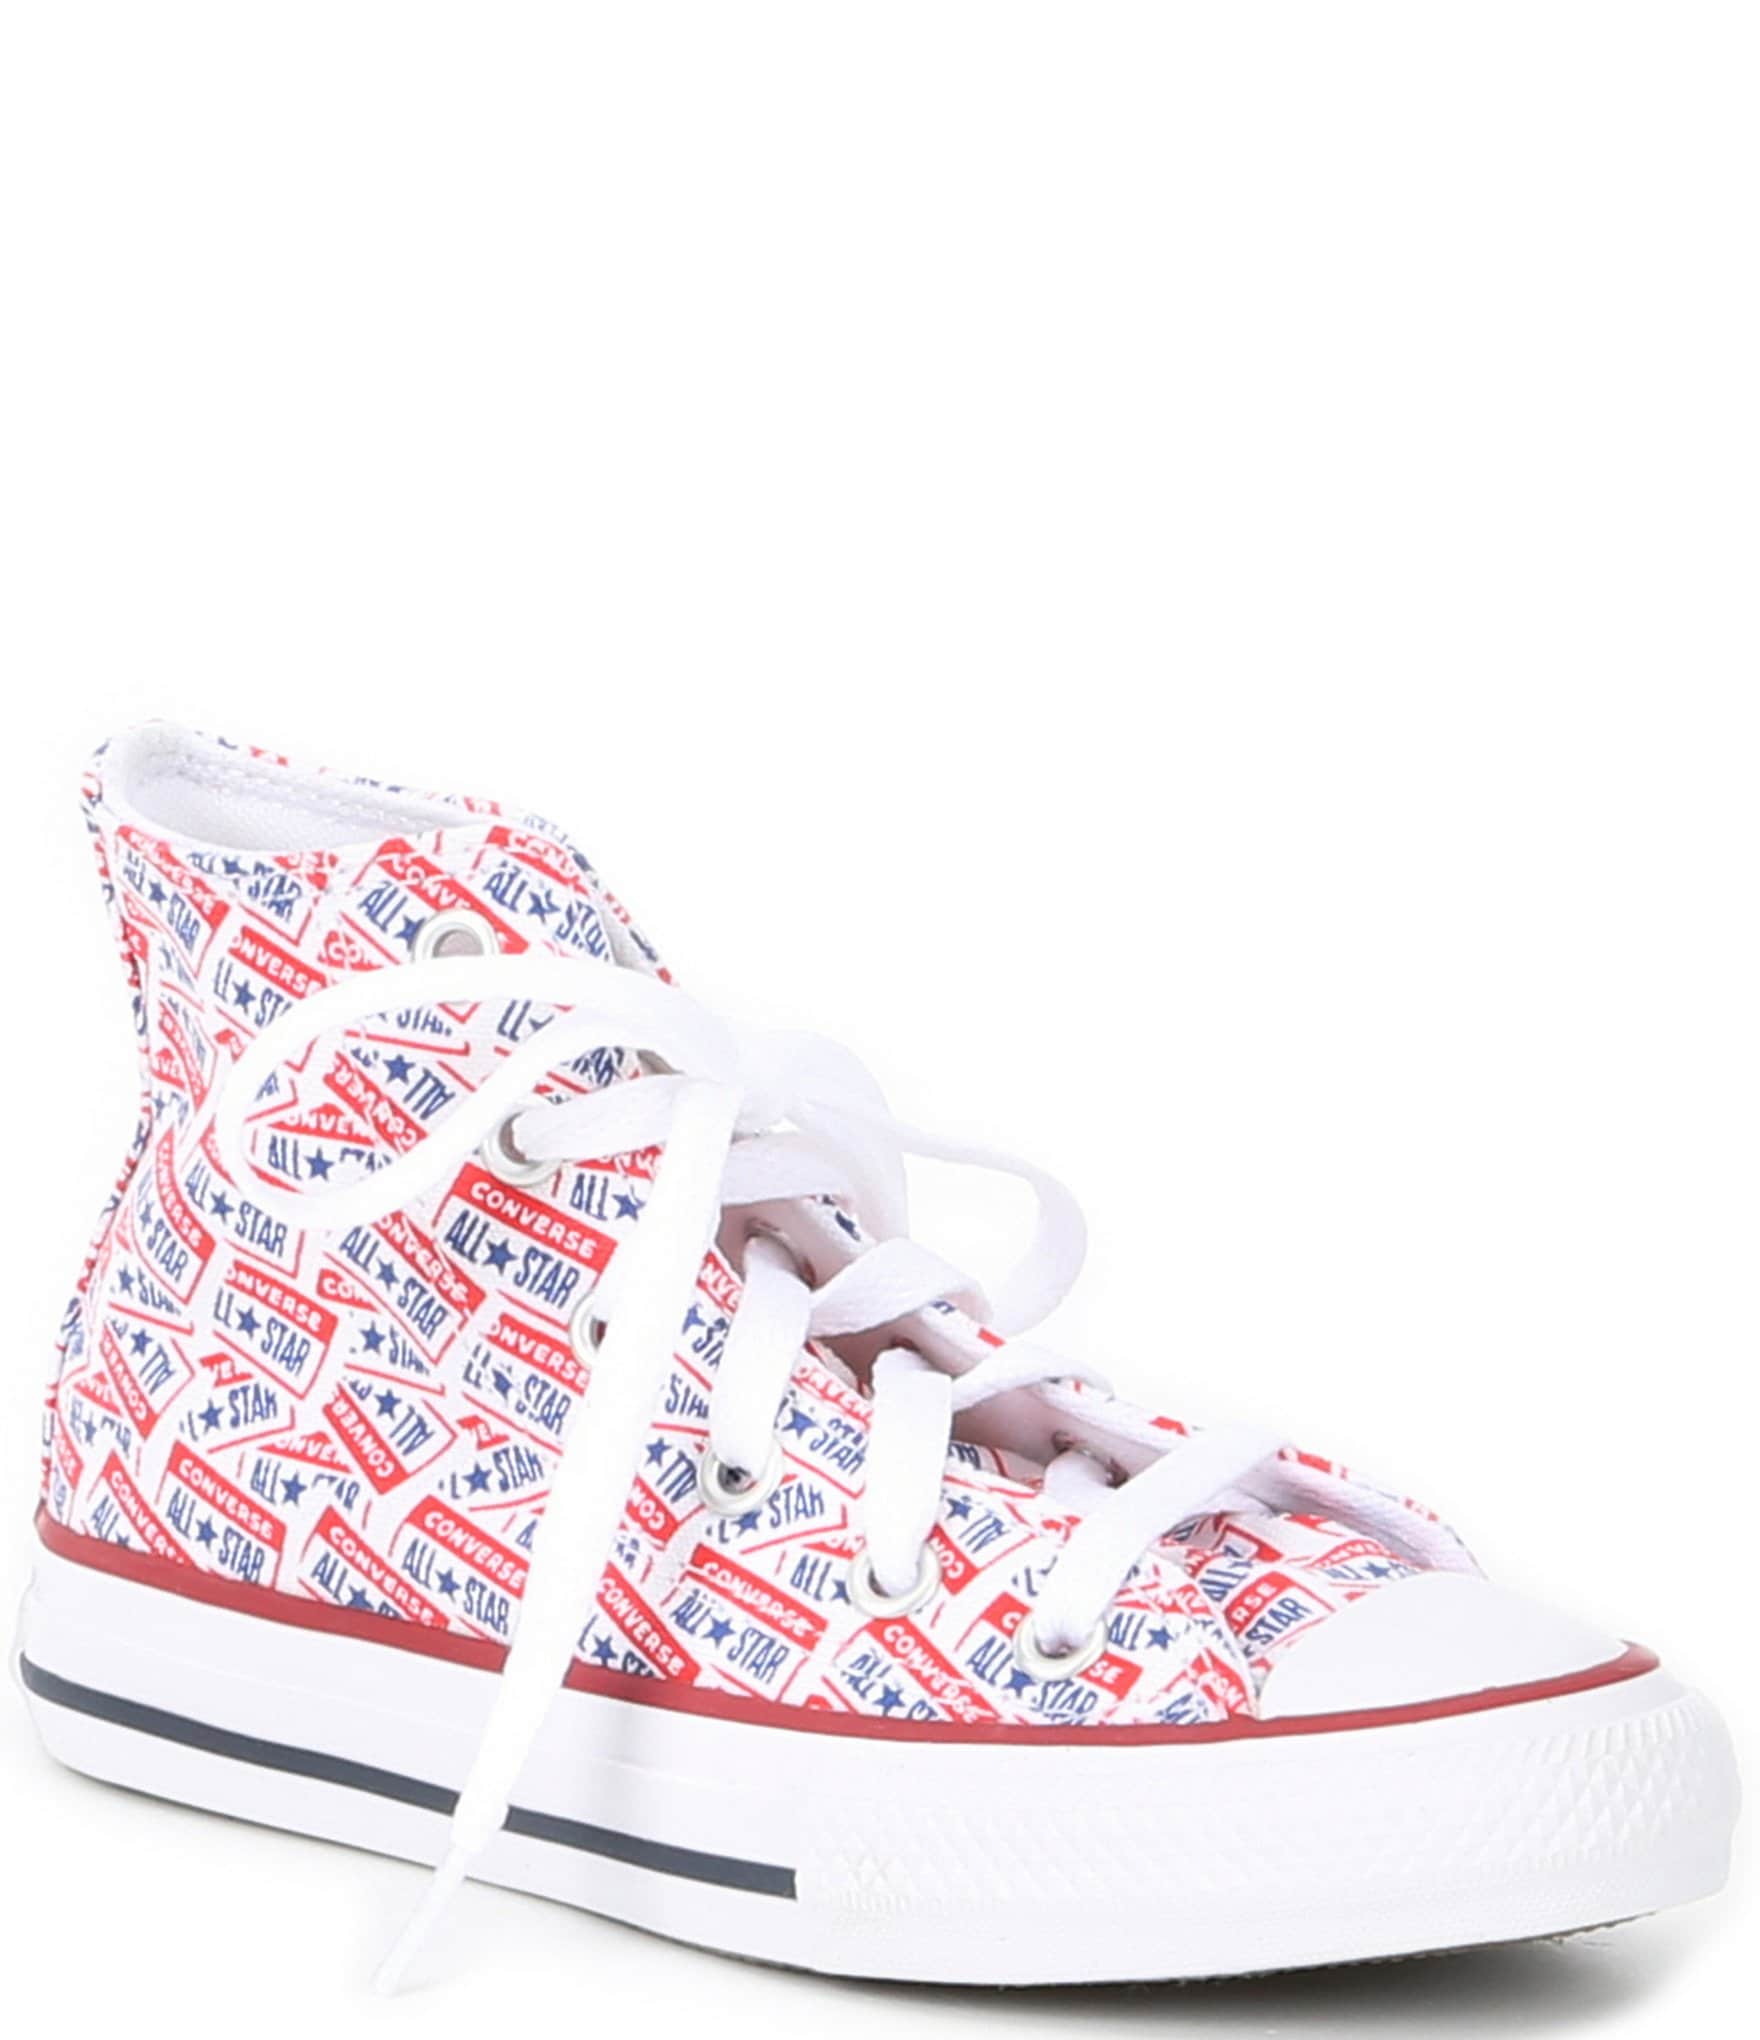 CONVERSE CHUCK TAYLOR ALL STAR HI TOP YOUTHS//KIDS CANVAS SHOES SNEAKERS